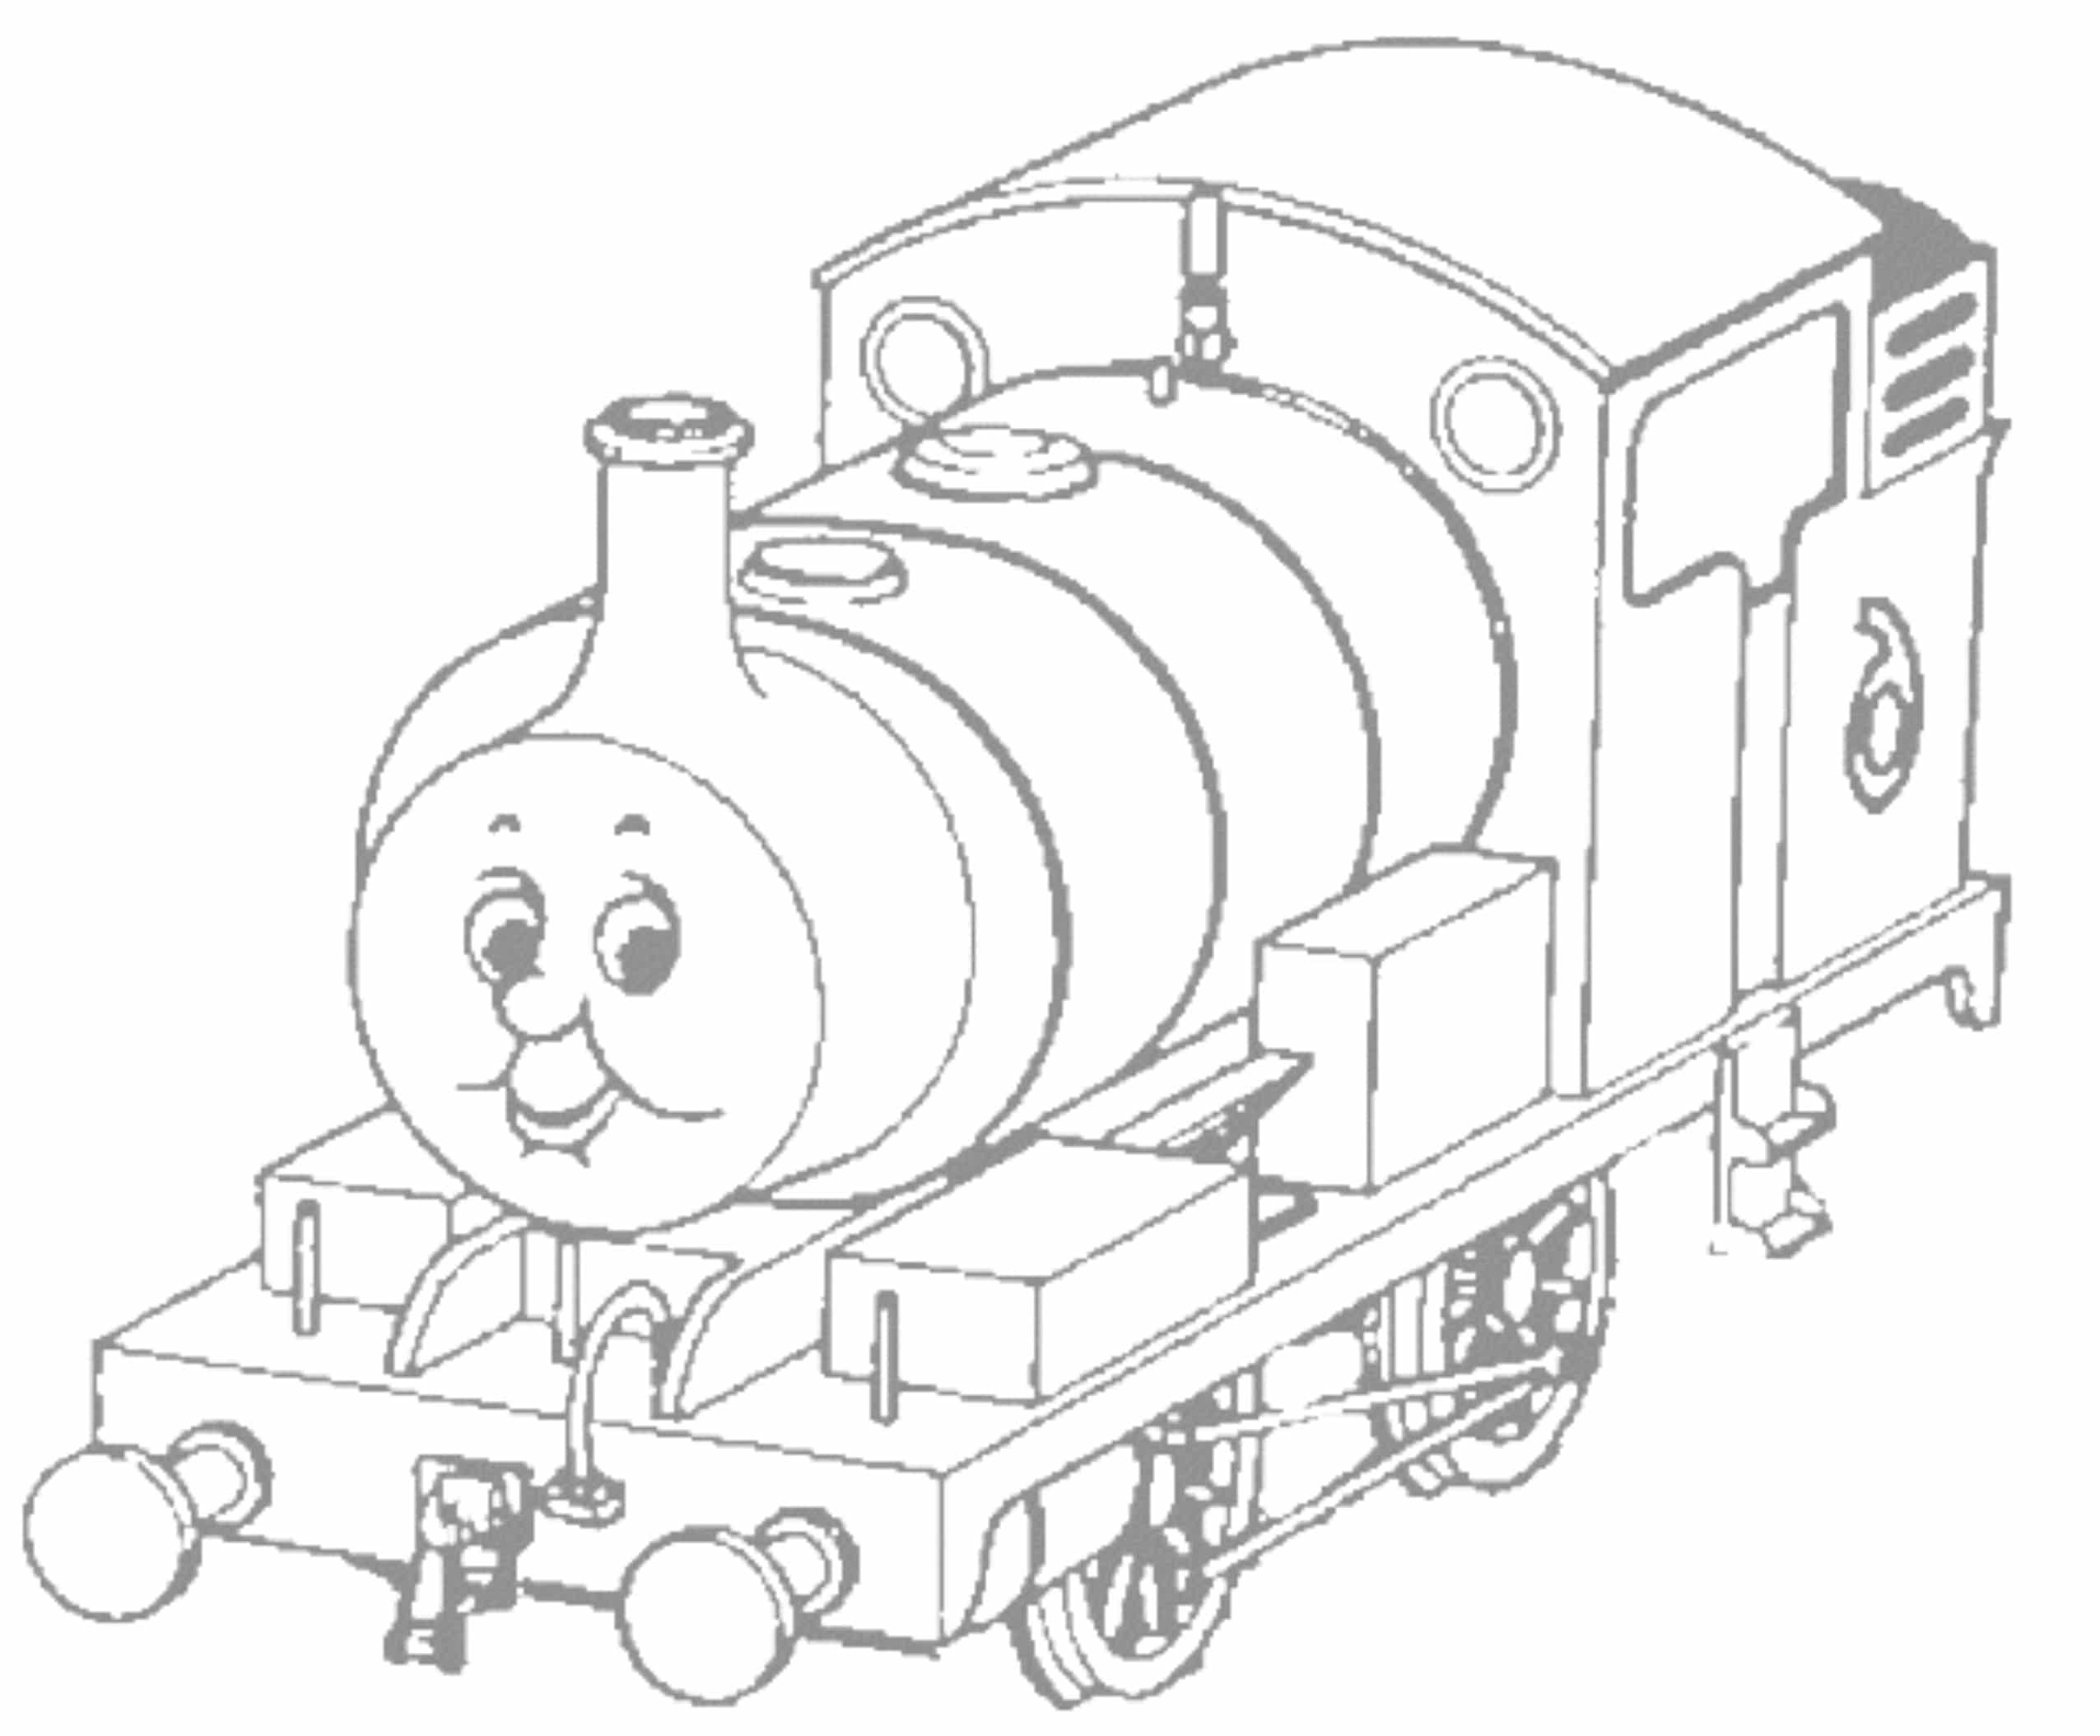 how to draw steam simple steam train drawing free download on clipartmag draw how to steam